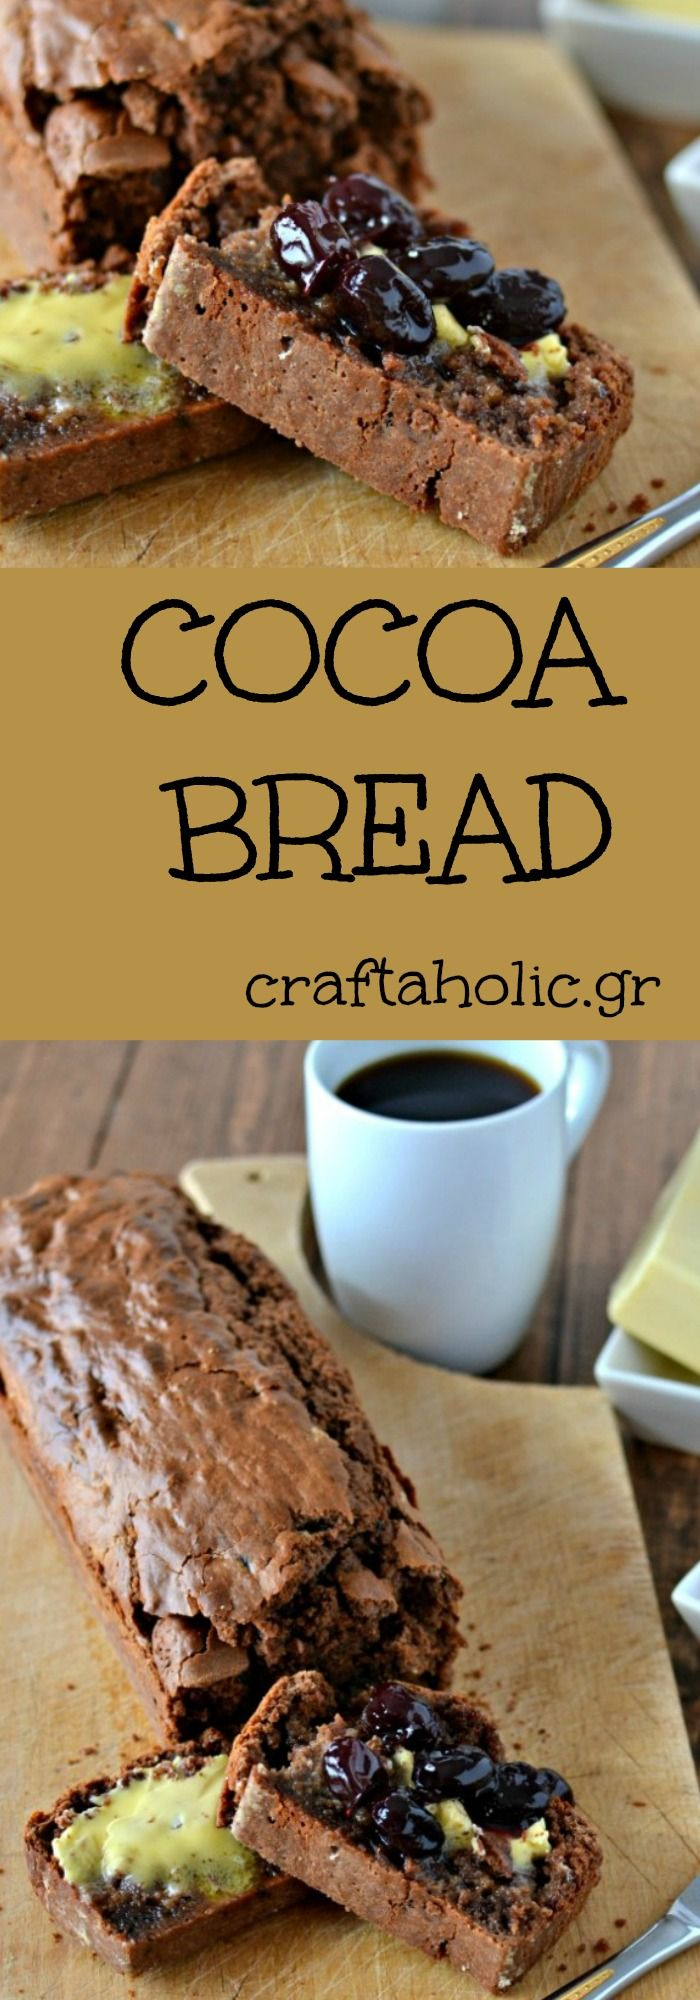 Have you ever thought of making cocoa bread? It's easy and it's sooo tasty! Perfect for breakfast and brunch!